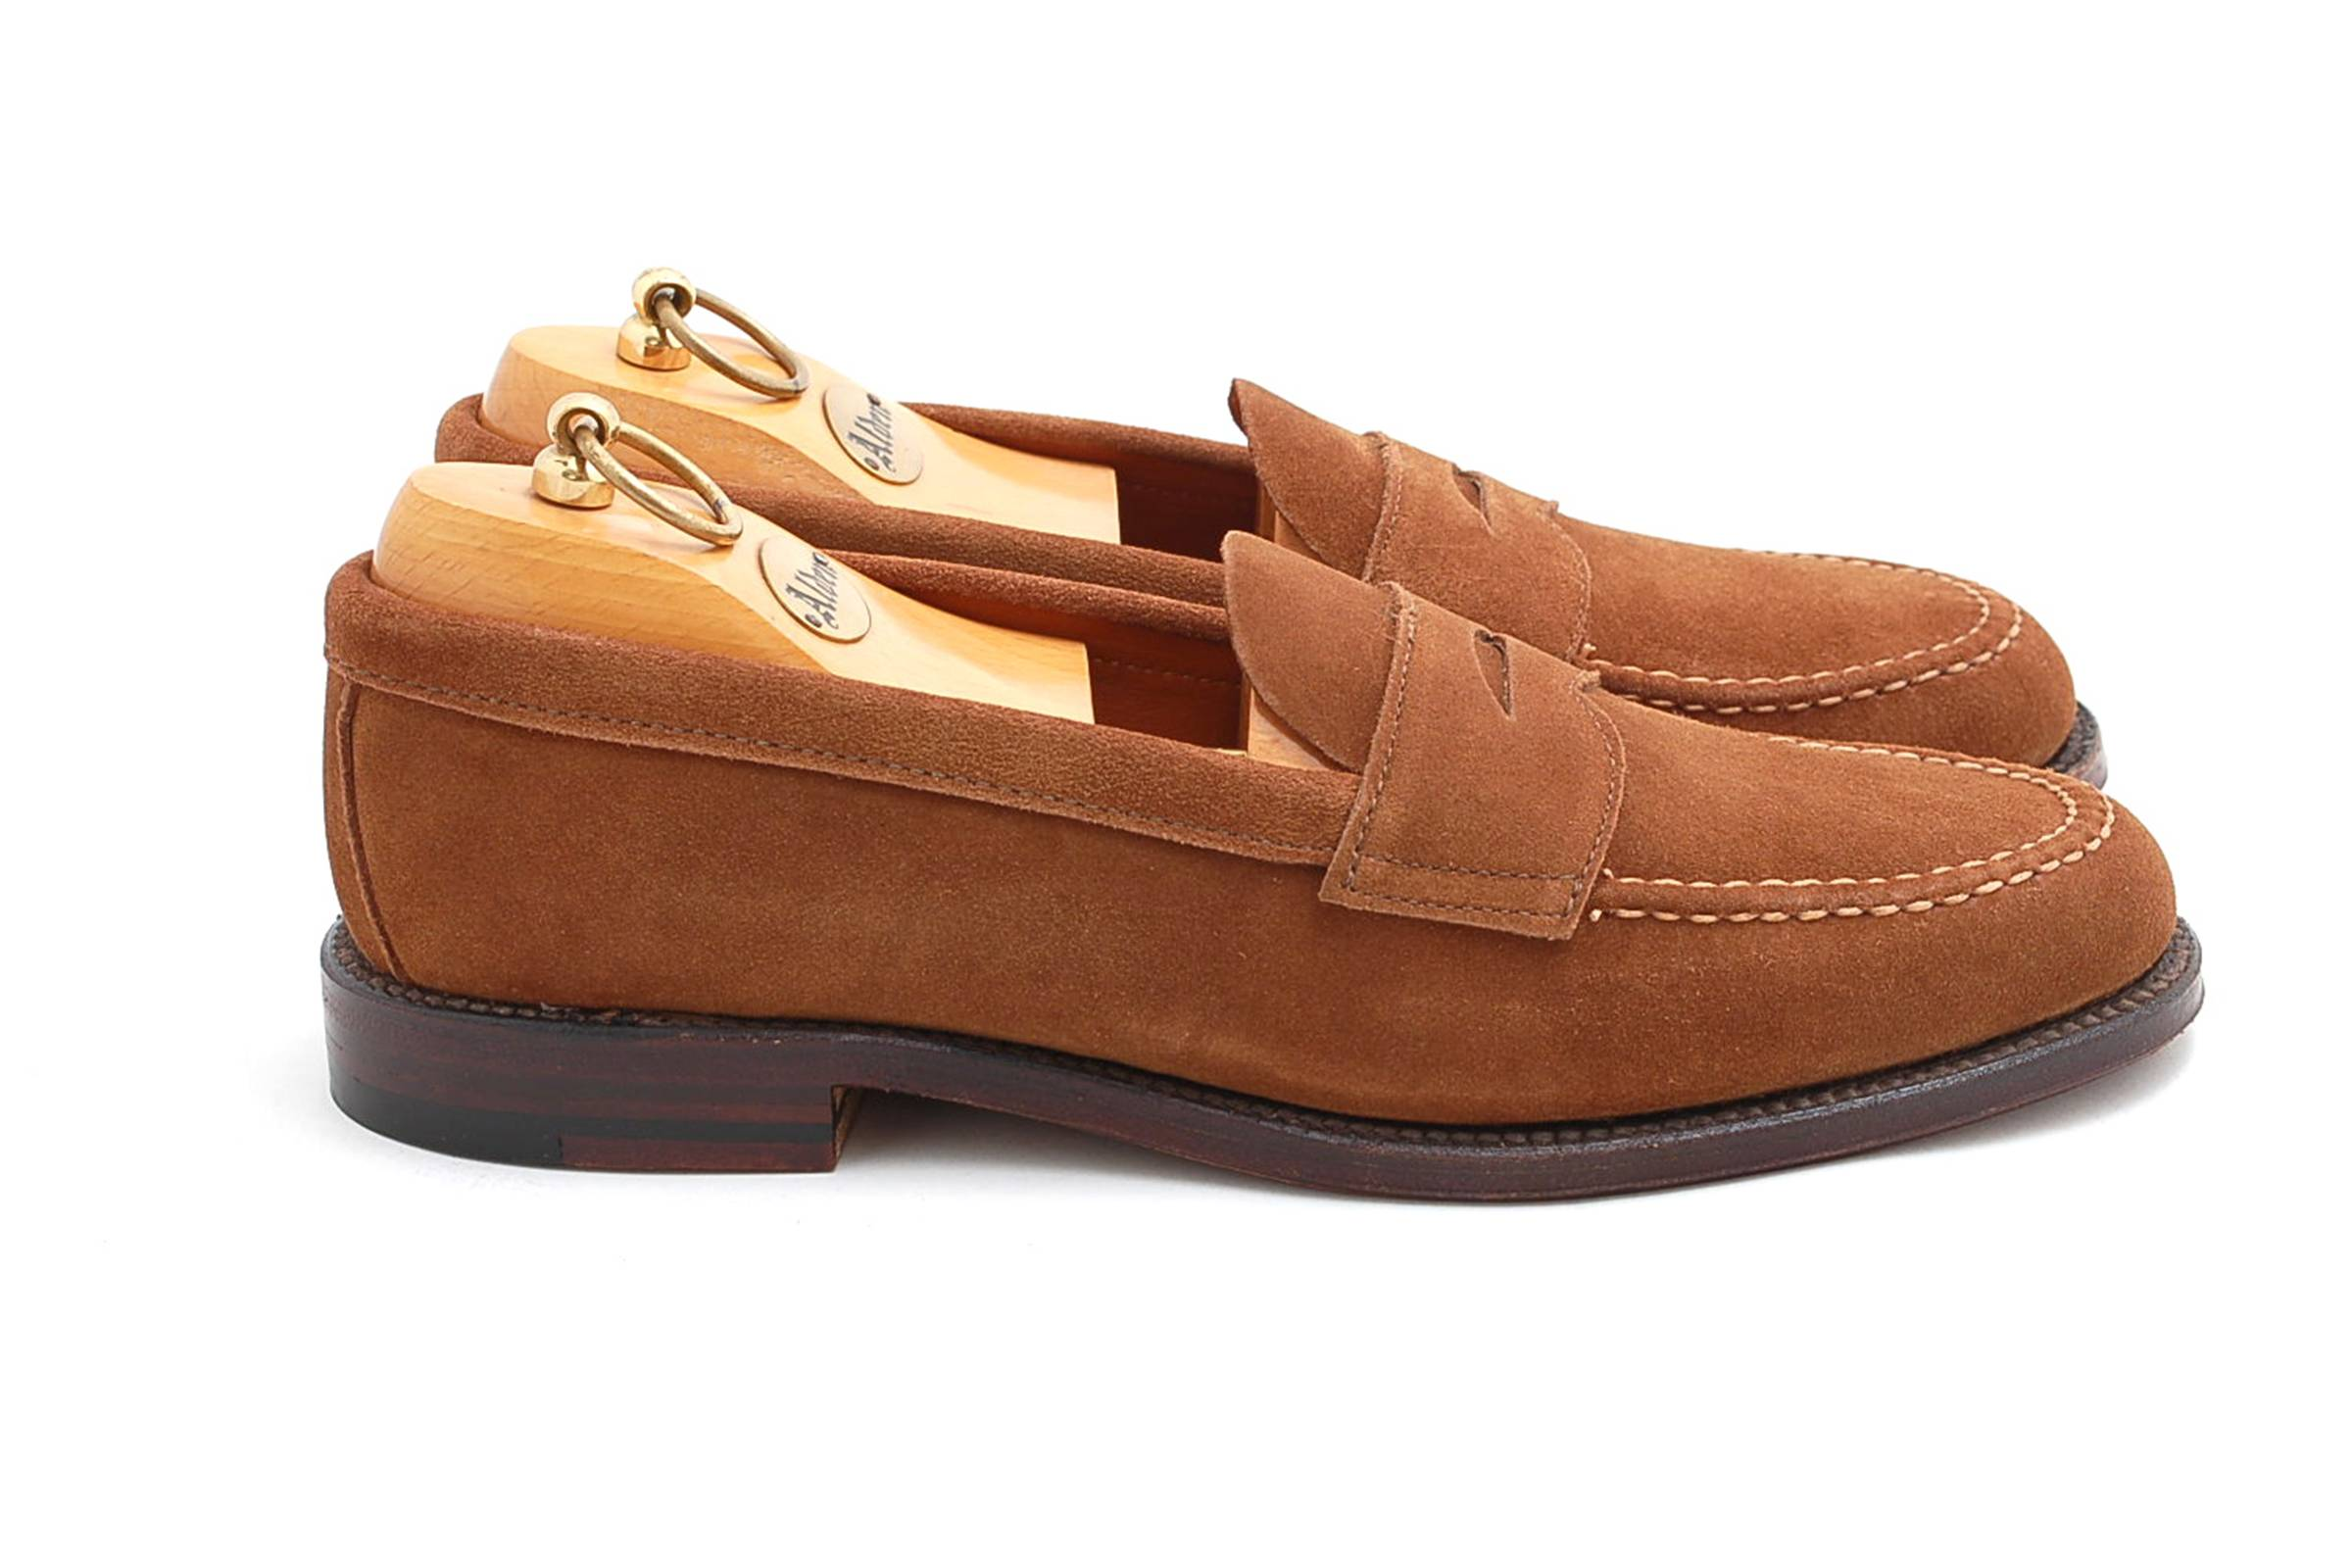 The Complete Guide To Dress Shoes Shoe Grailed D Island Slip On Mocasine Casual Black Bit Belgian Or Penny Loafers Refer Any Low Cut Leather Theyre Usually Constructed With A Moccasin Style Toe Although That Can Mean